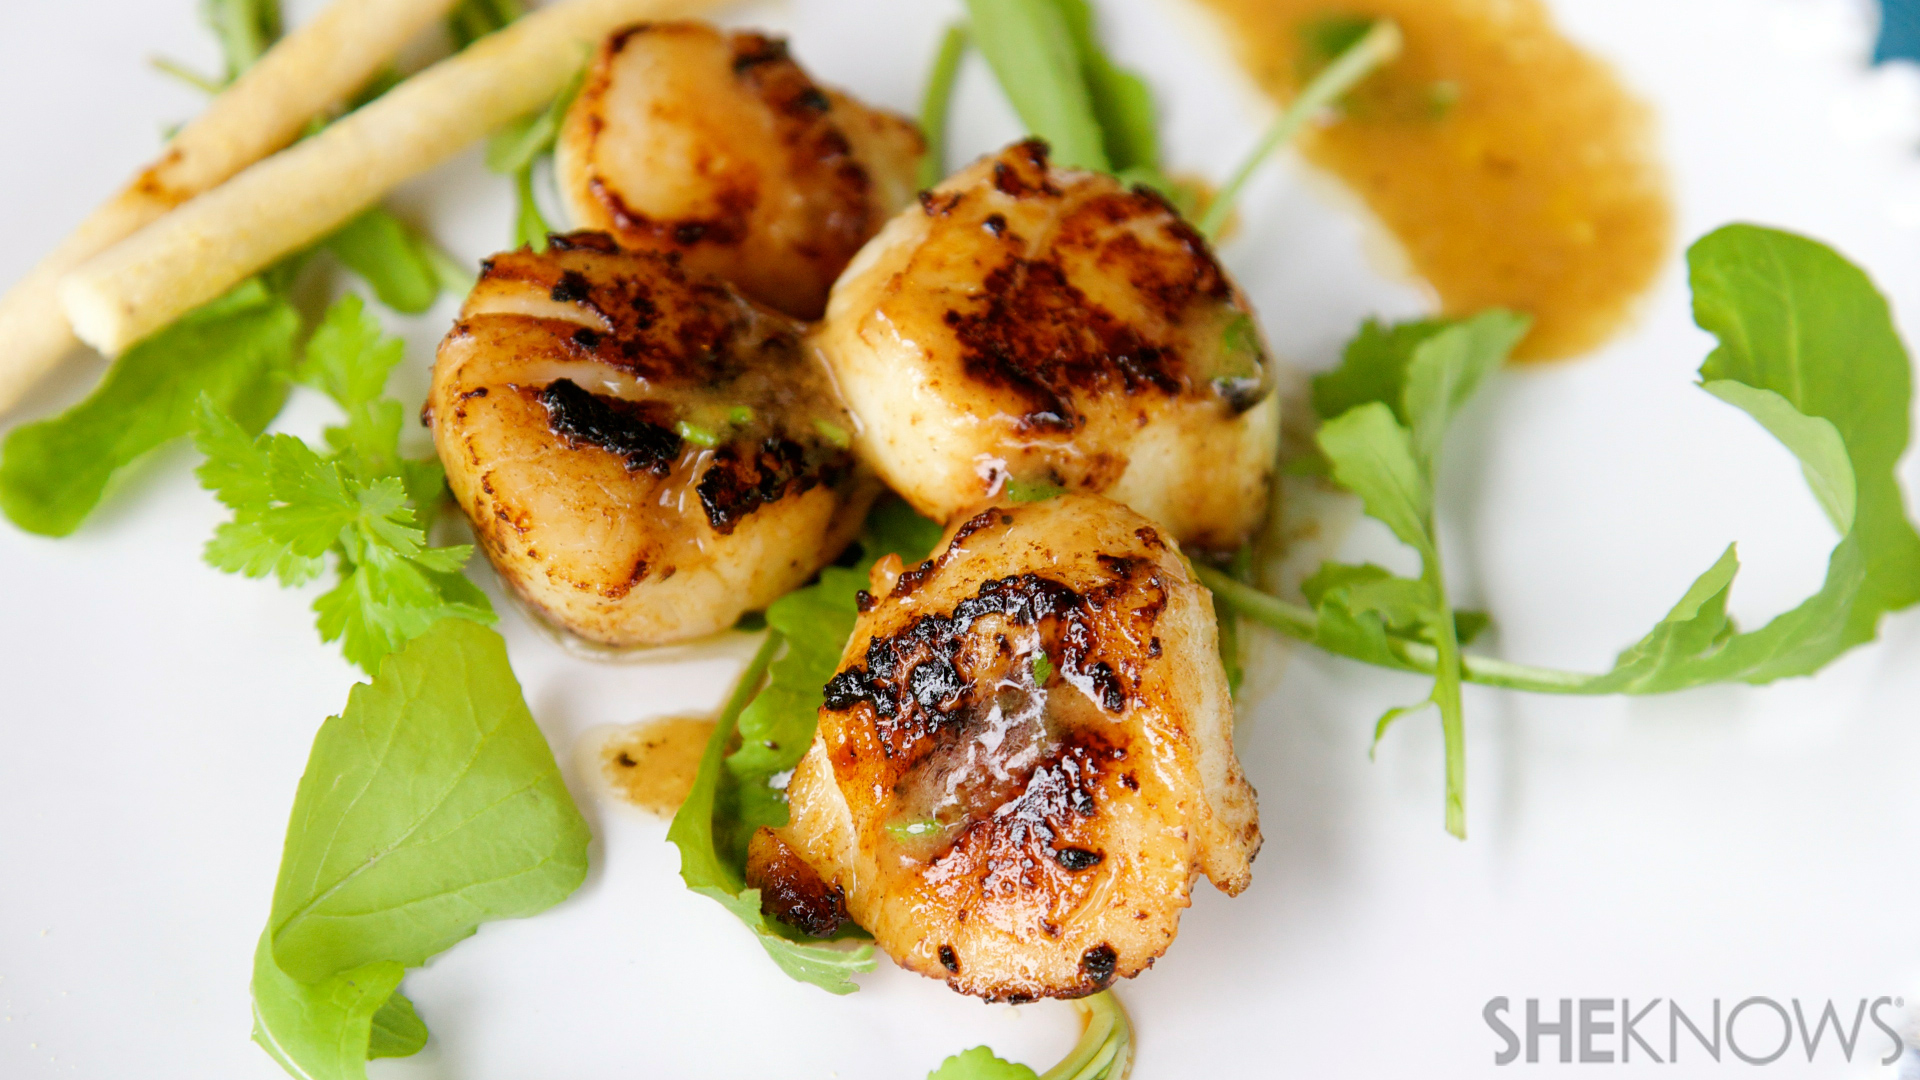 Pan seared scallops with champagne sauce recipe